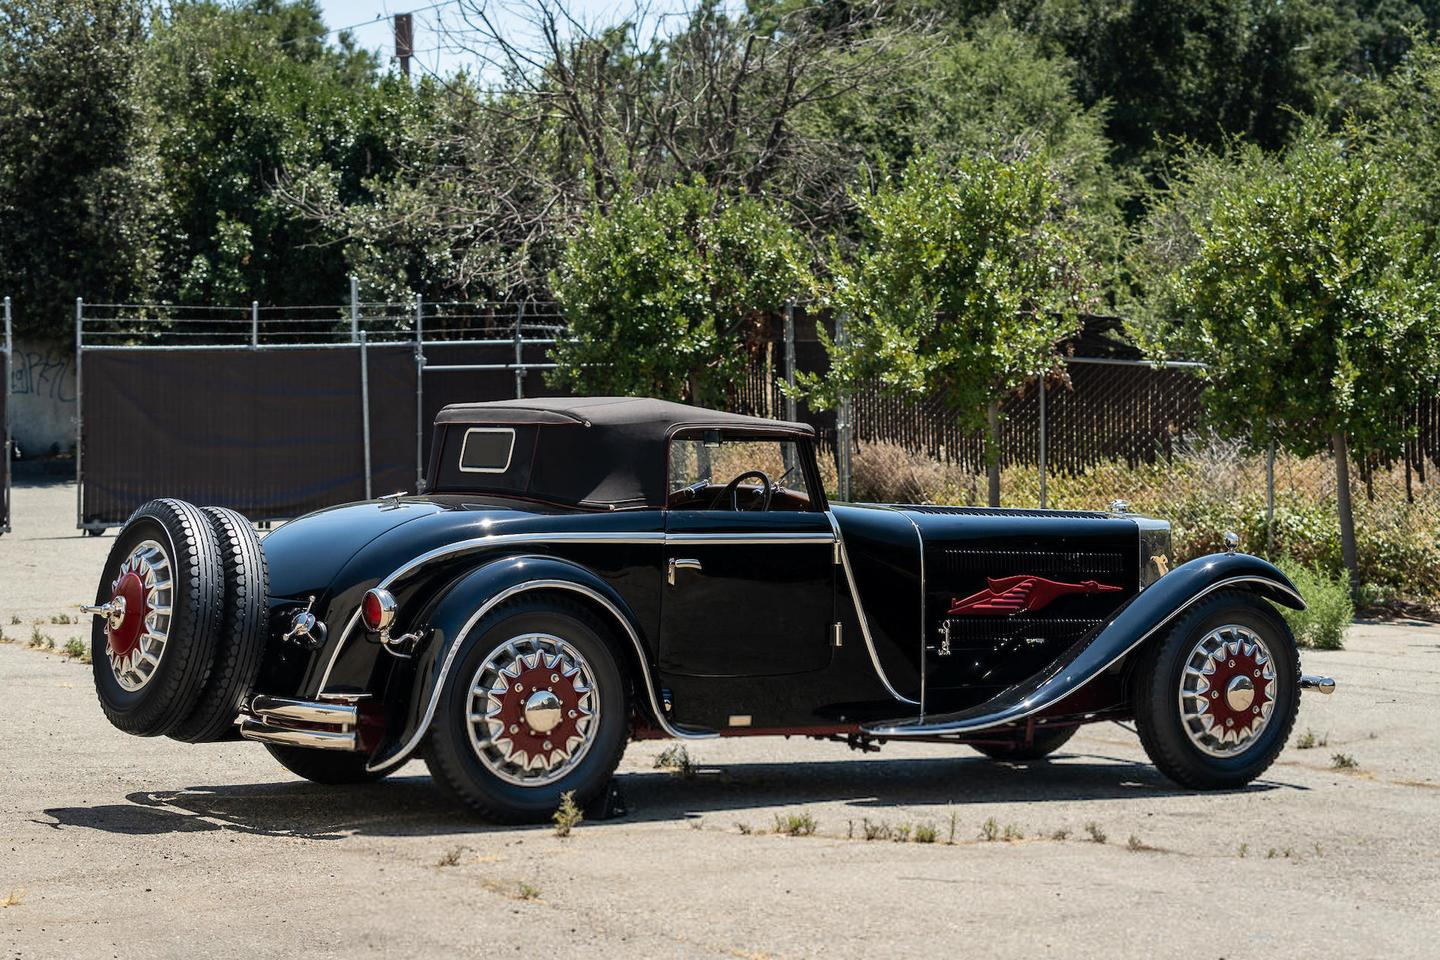 This 1930 Bucciali Tav 30 La Marie Torpédo Sport Type Cannes will go to auction during Monterey Car Week with Bonhams (Lot 73) on Friday, 13 August 2021 with no publicly available official estimate.